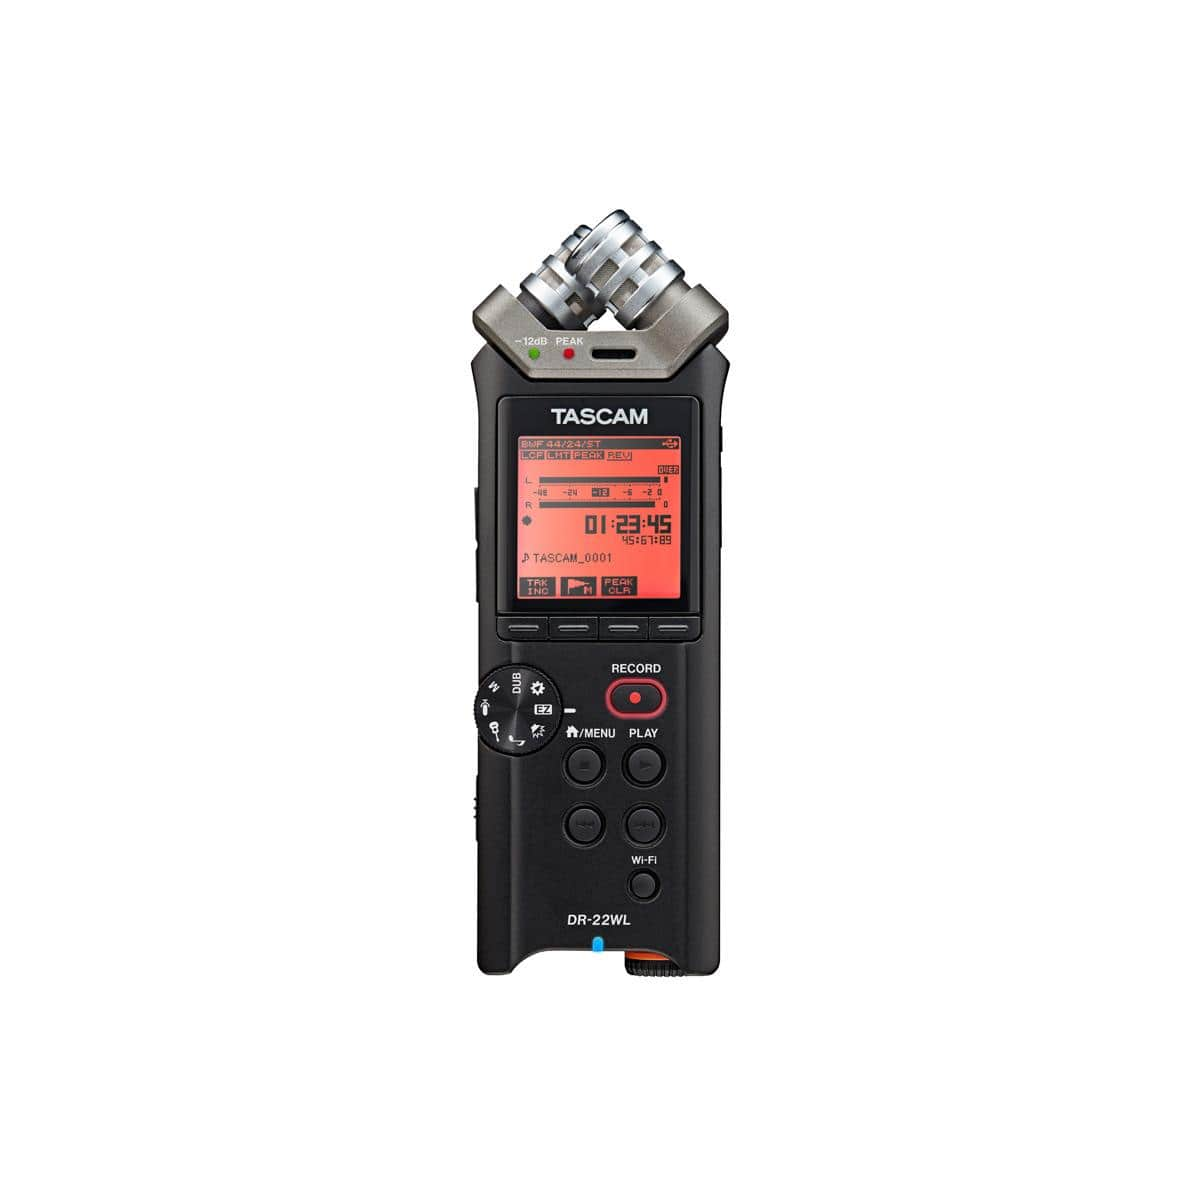 Tascam DR-22WL 2-Channels Handheld Audio Recorder w/ WiFi  $81 + Free Shipping